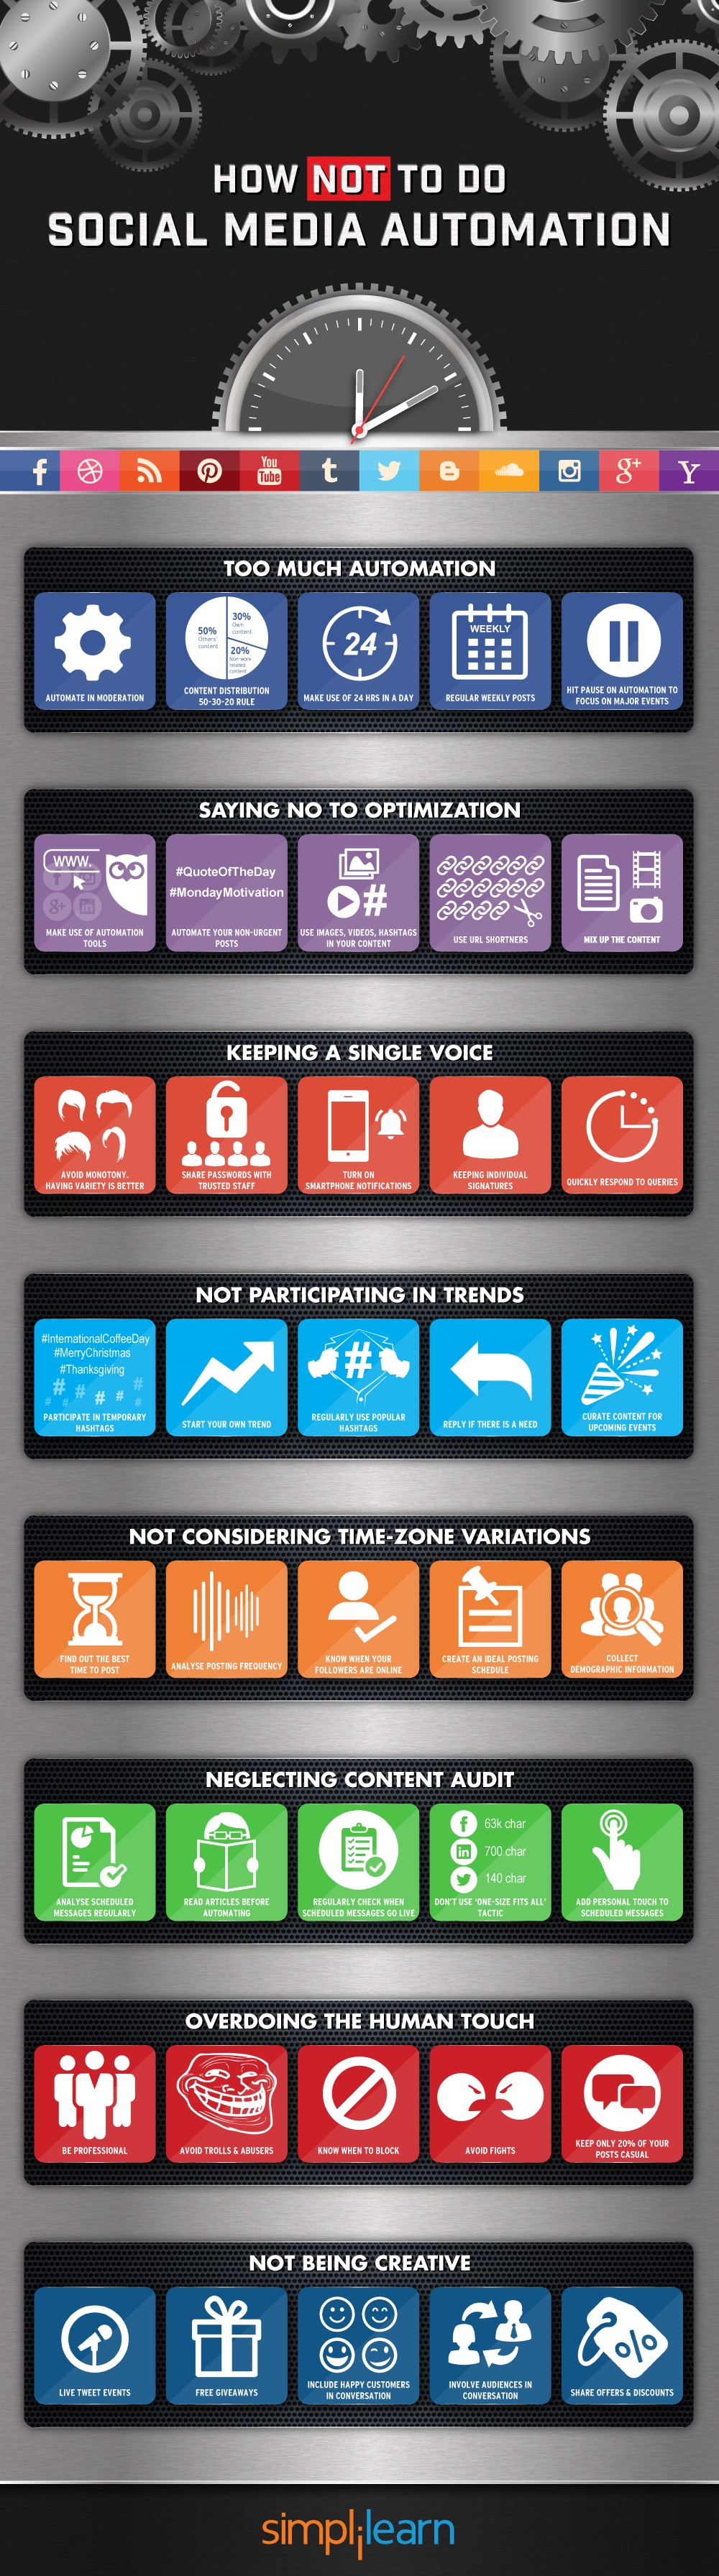 Best-socialmedia-automation-infographic.jpg